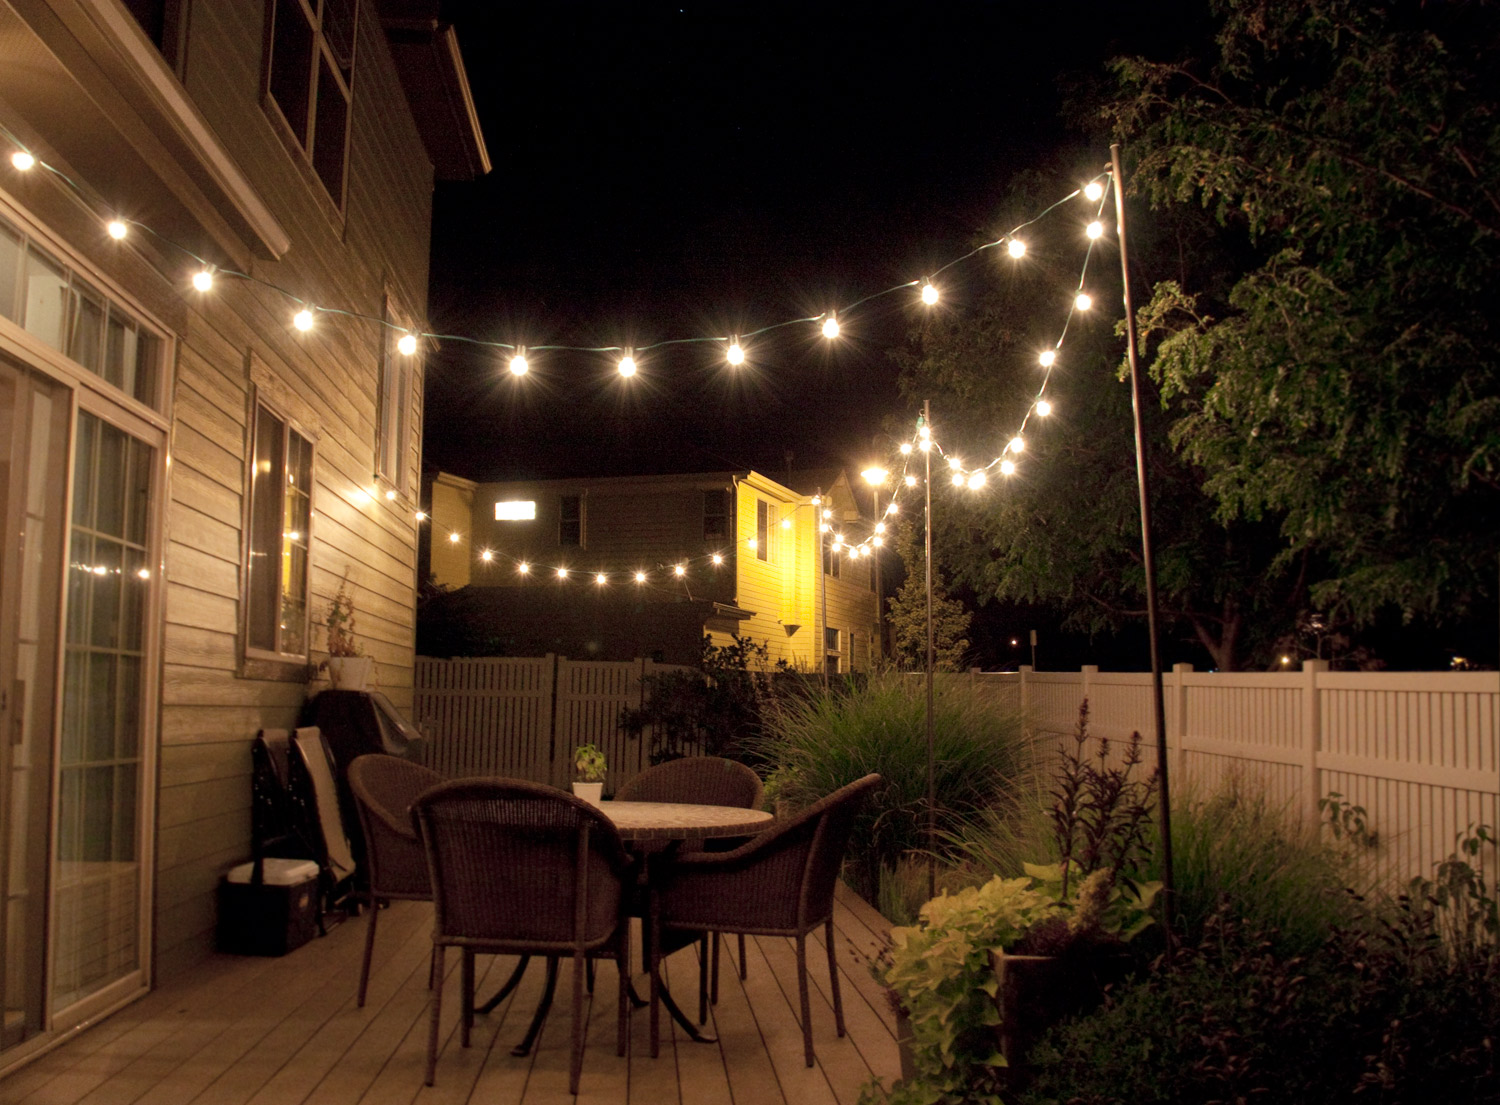 Outdoor Lighting Ideas Diy 17 outdoor lighting ideas for the garden scattered thoughts of a 17 outdoor lighting ideas for the garden scattered thoughts of a crafty mom by jamie sanders workwithnaturefo